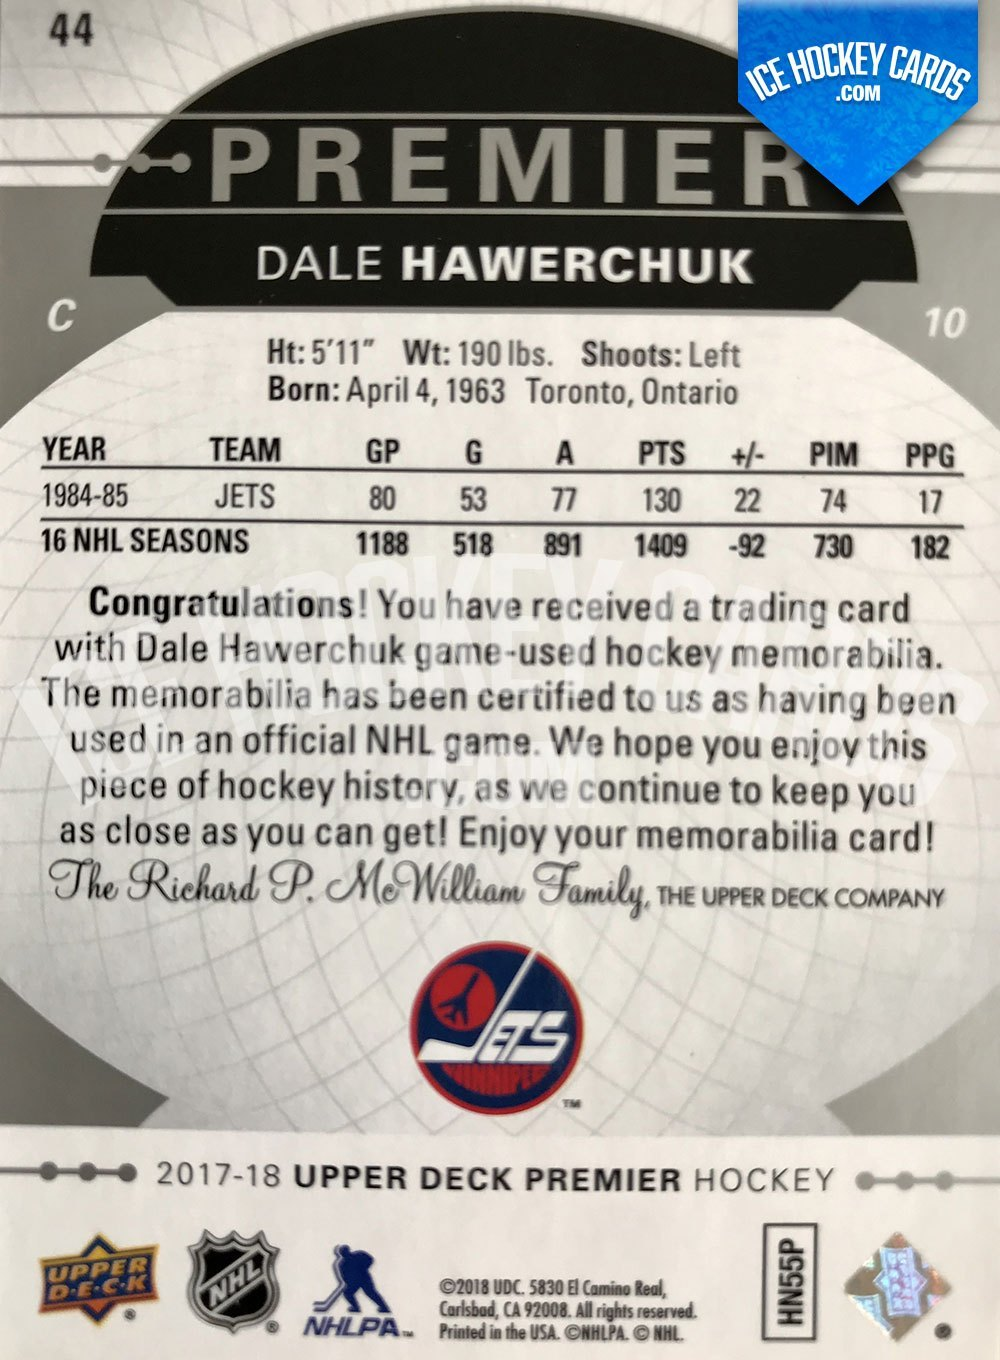 Upper Deck - Premier Hockey 2017-18 - Dale Hawerchuk Base Legend Patch Card back